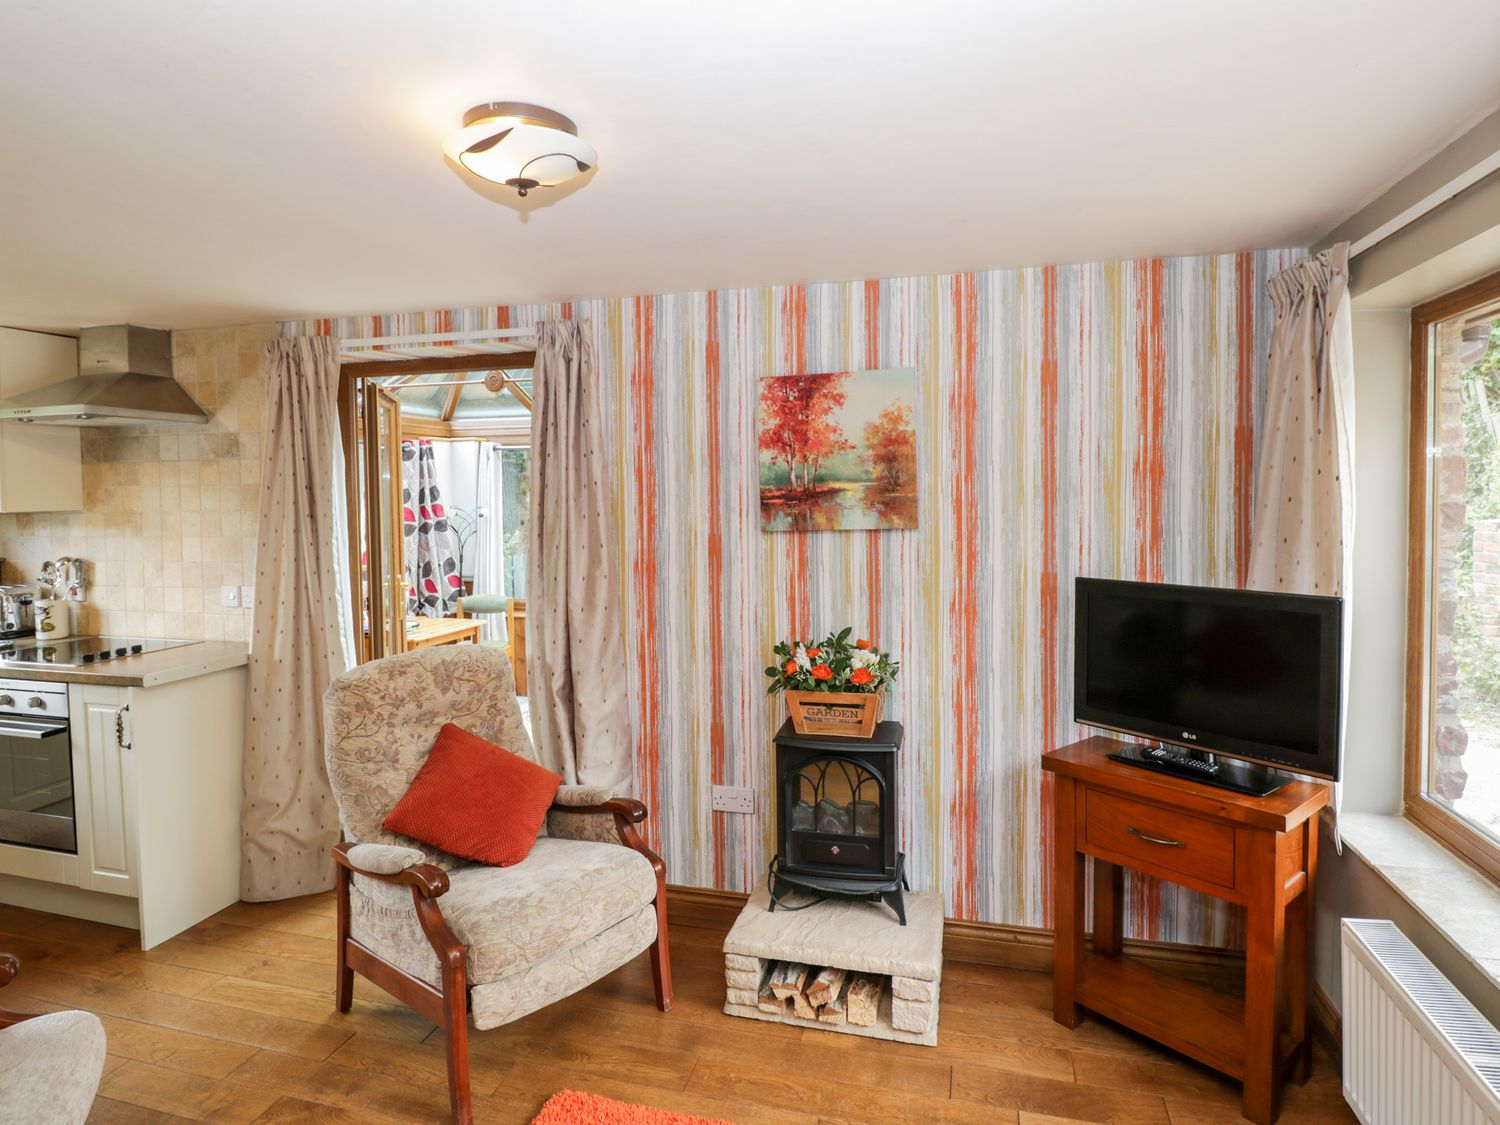 Calcott Annexe in Whitchurch - sleeps 2 people